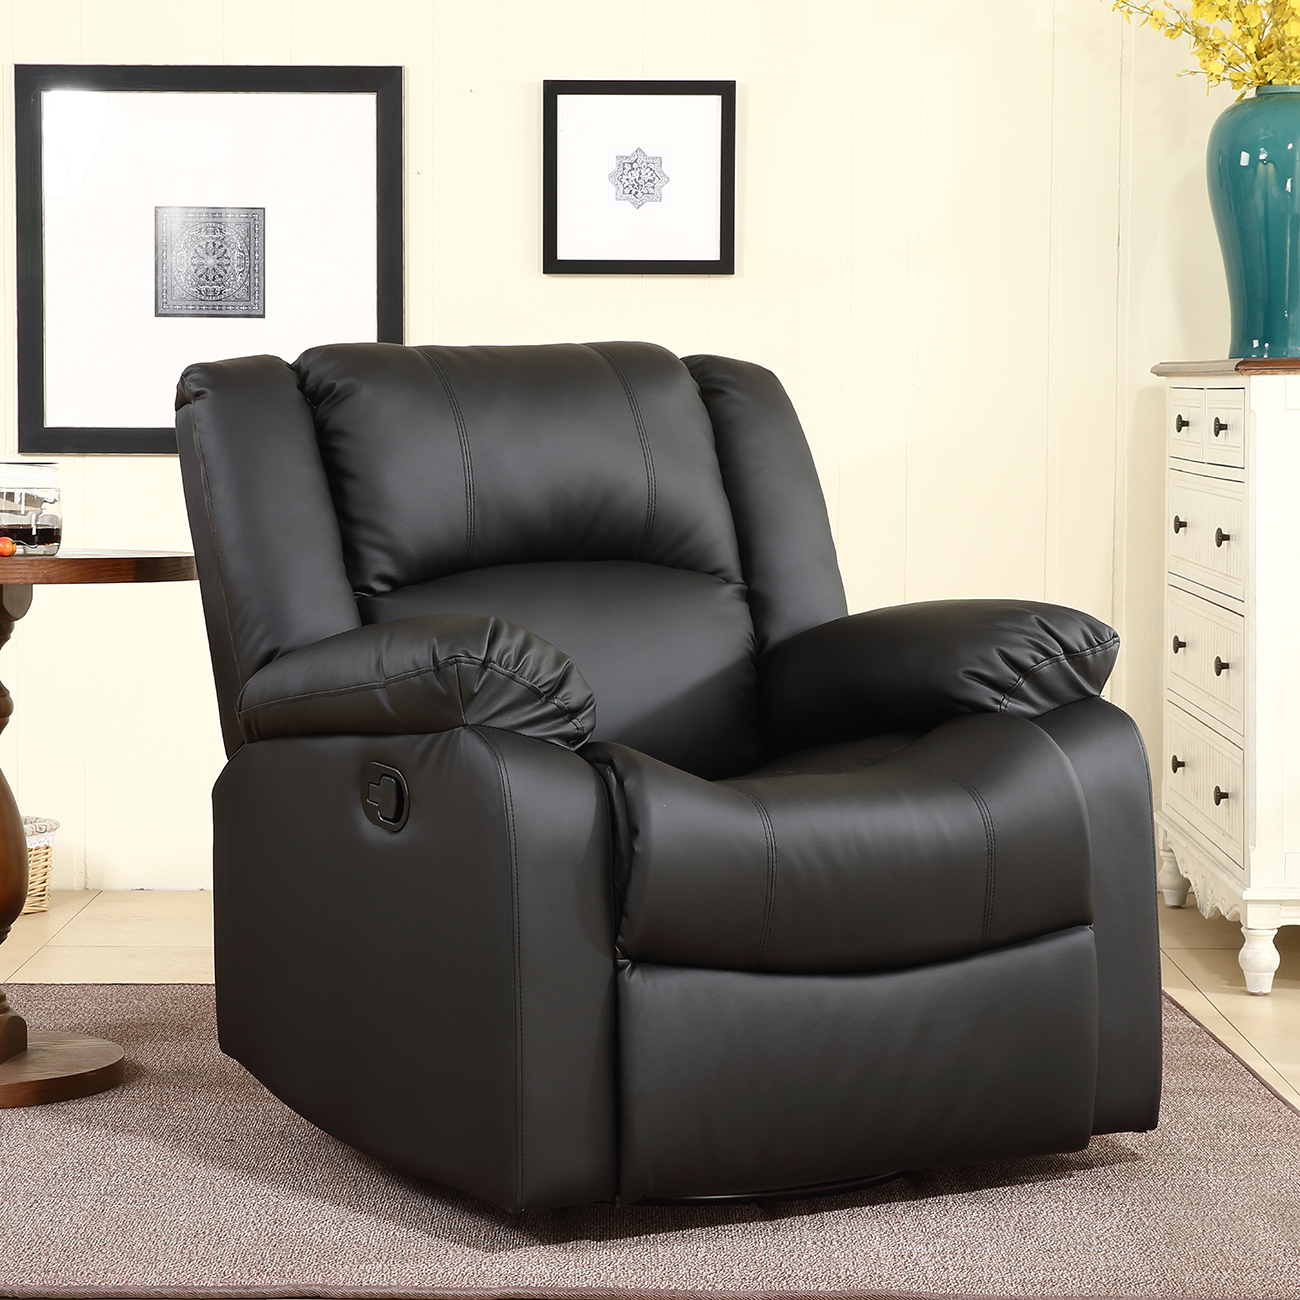 Belleze Swivel Glider Rocker Recliner Chair Overstuffed Padding Faux Leather, Black